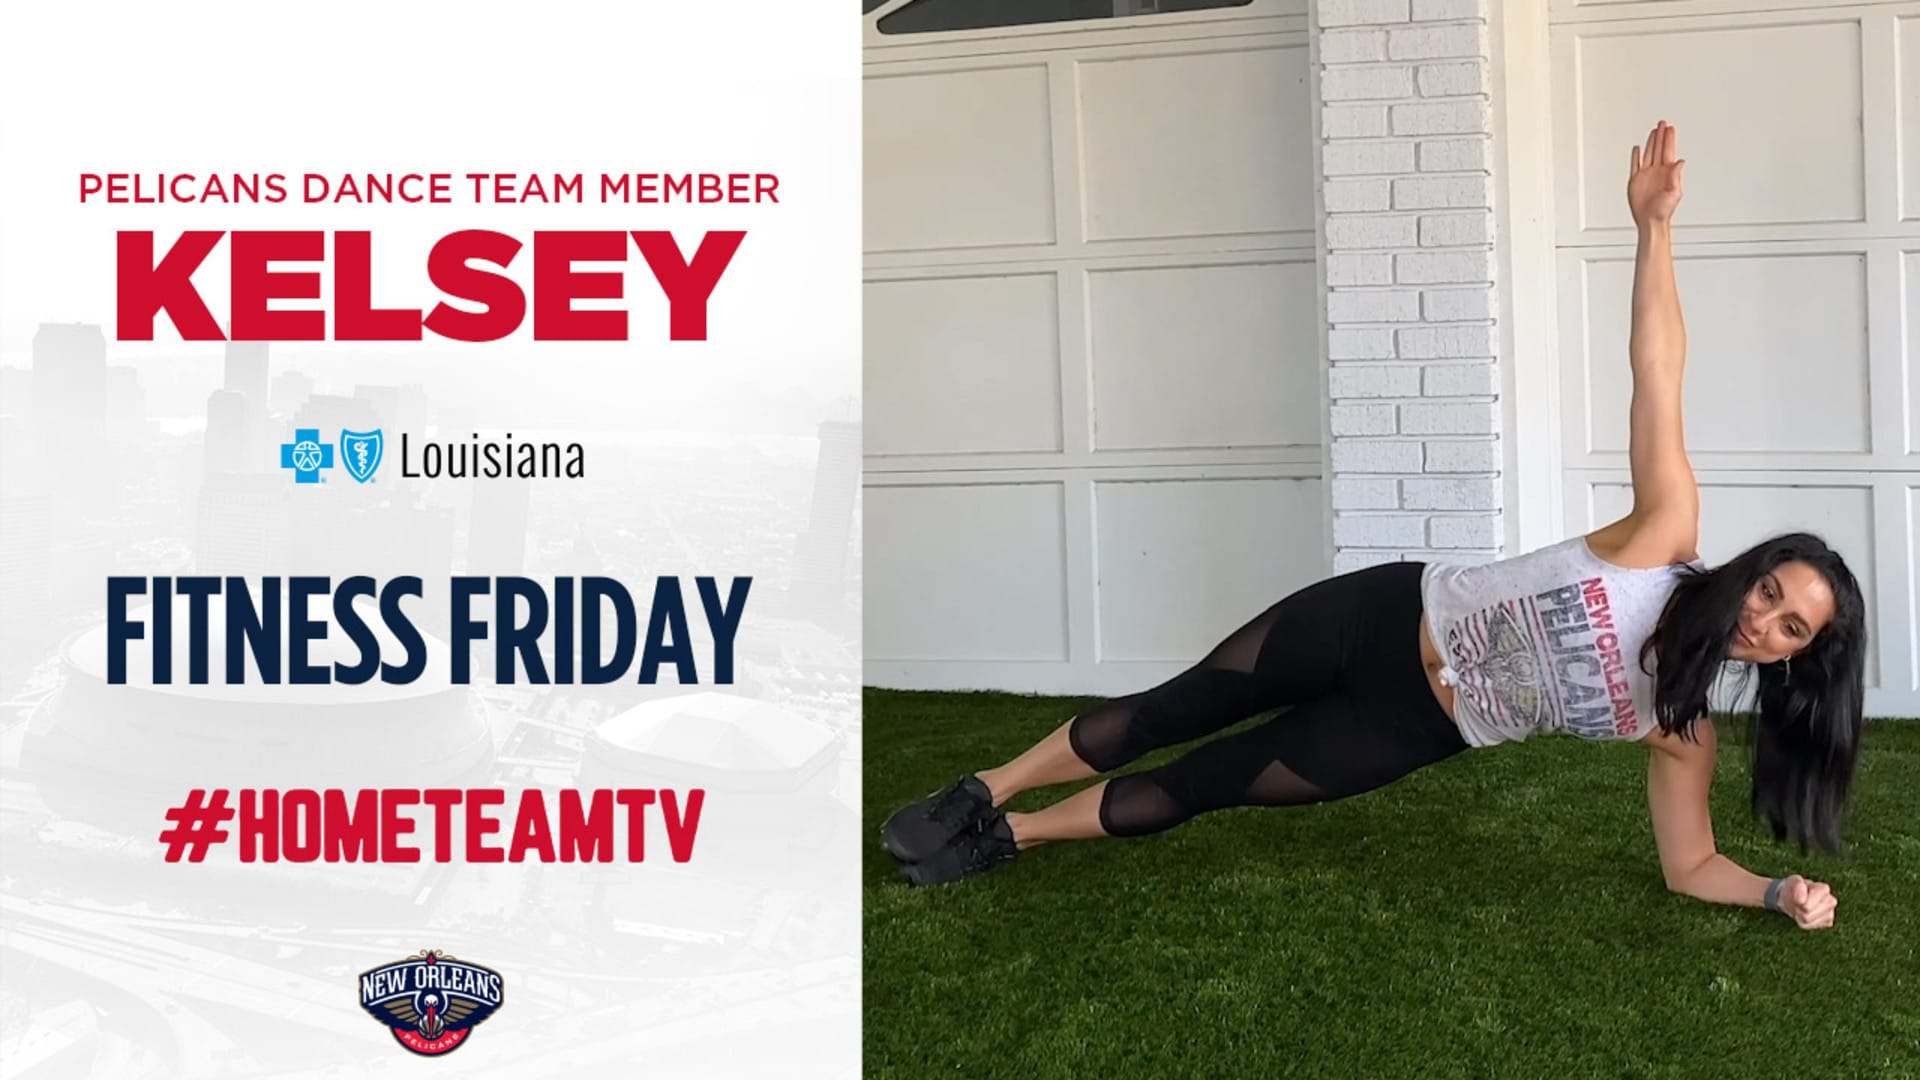 HomeTeamTV: Fitness Friday with Kelsey from the Pelicans Dance Team, 5/8/20